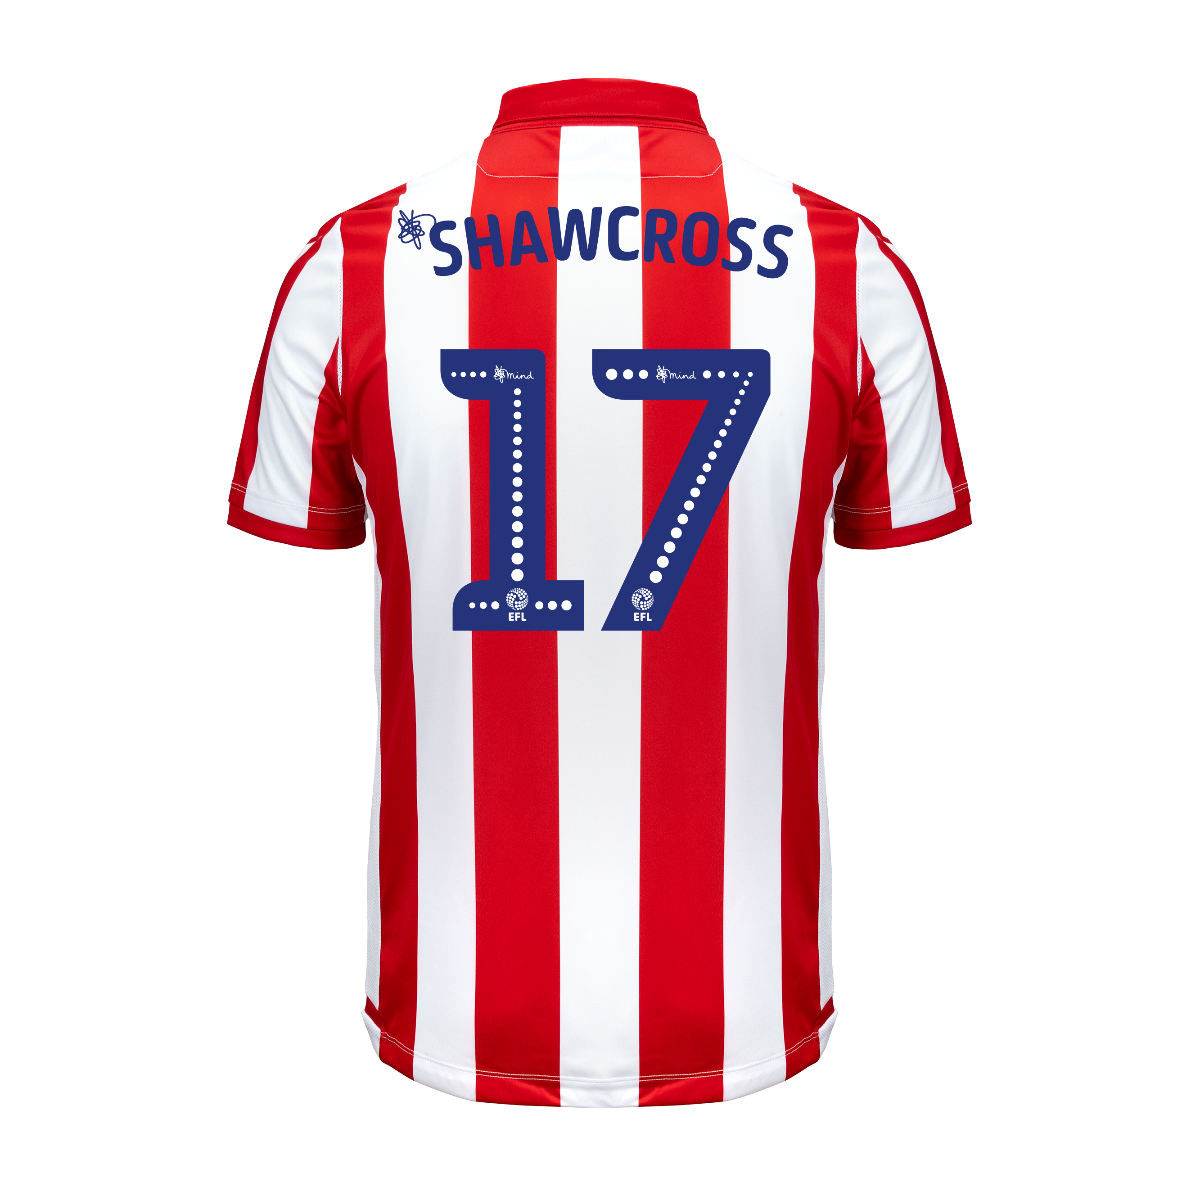 2019/20 Adult Home SS Shirt - Shawcross